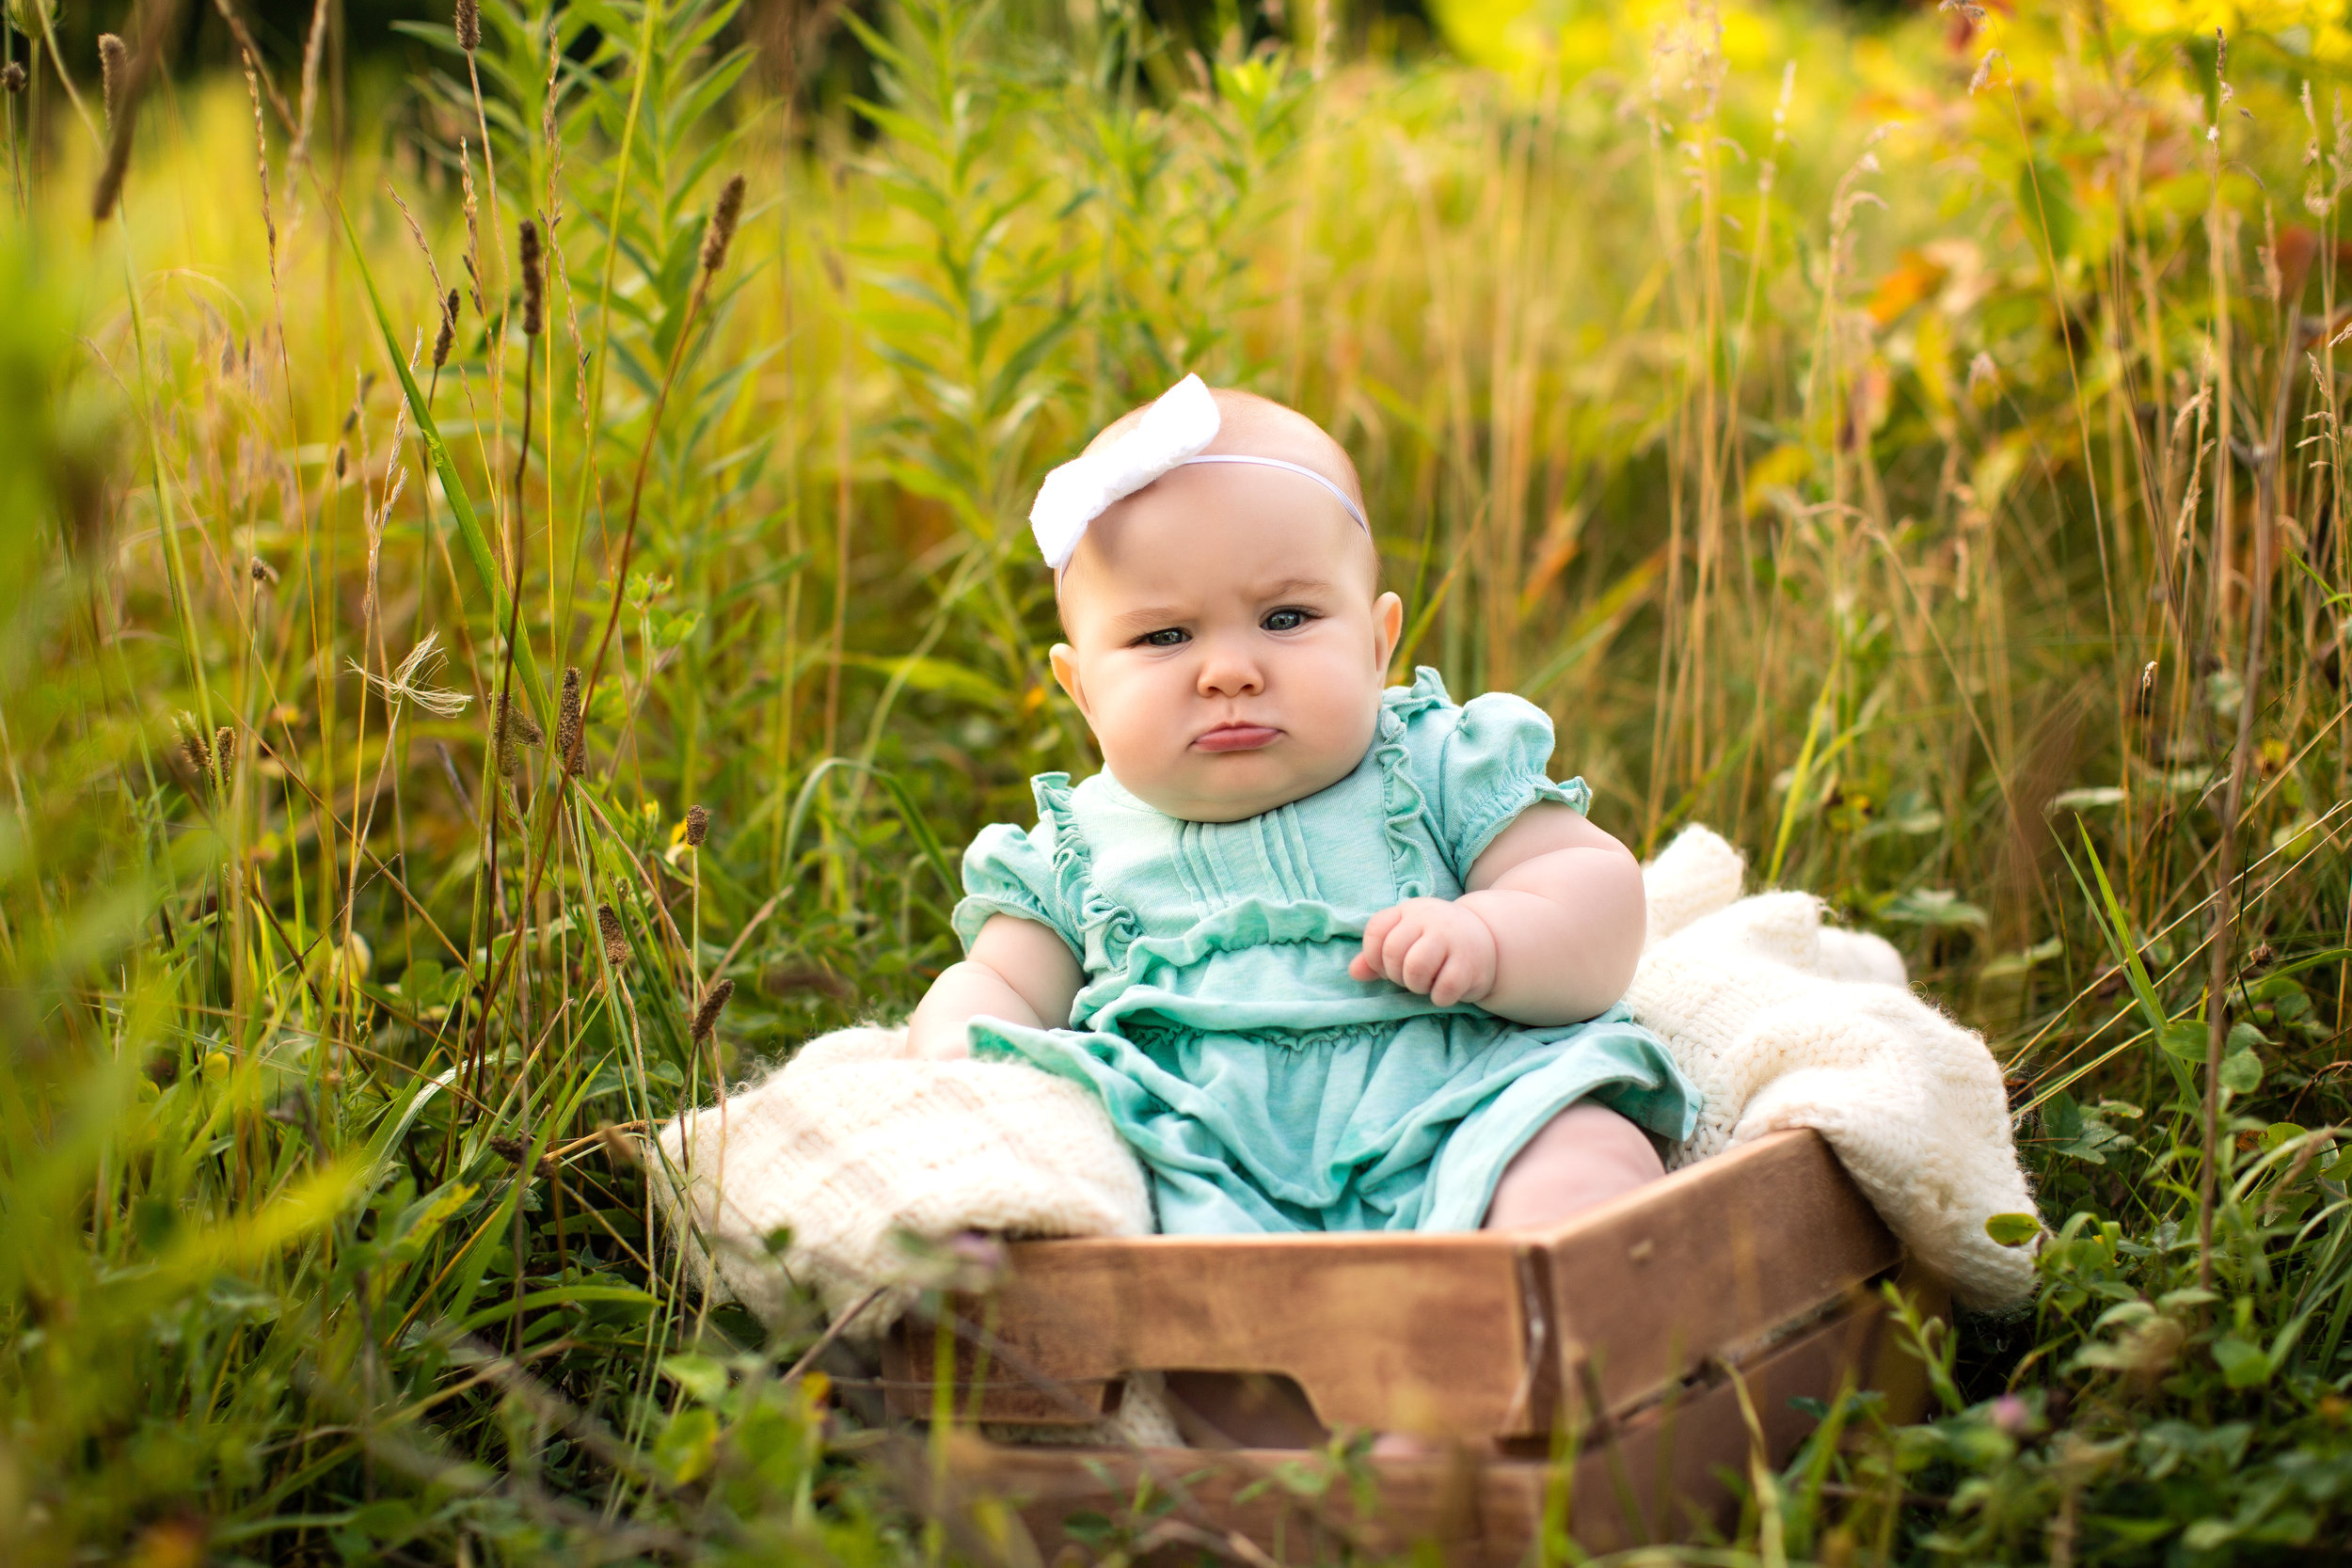 charlotte 6 months Pearl Photo Design-1699.jpg